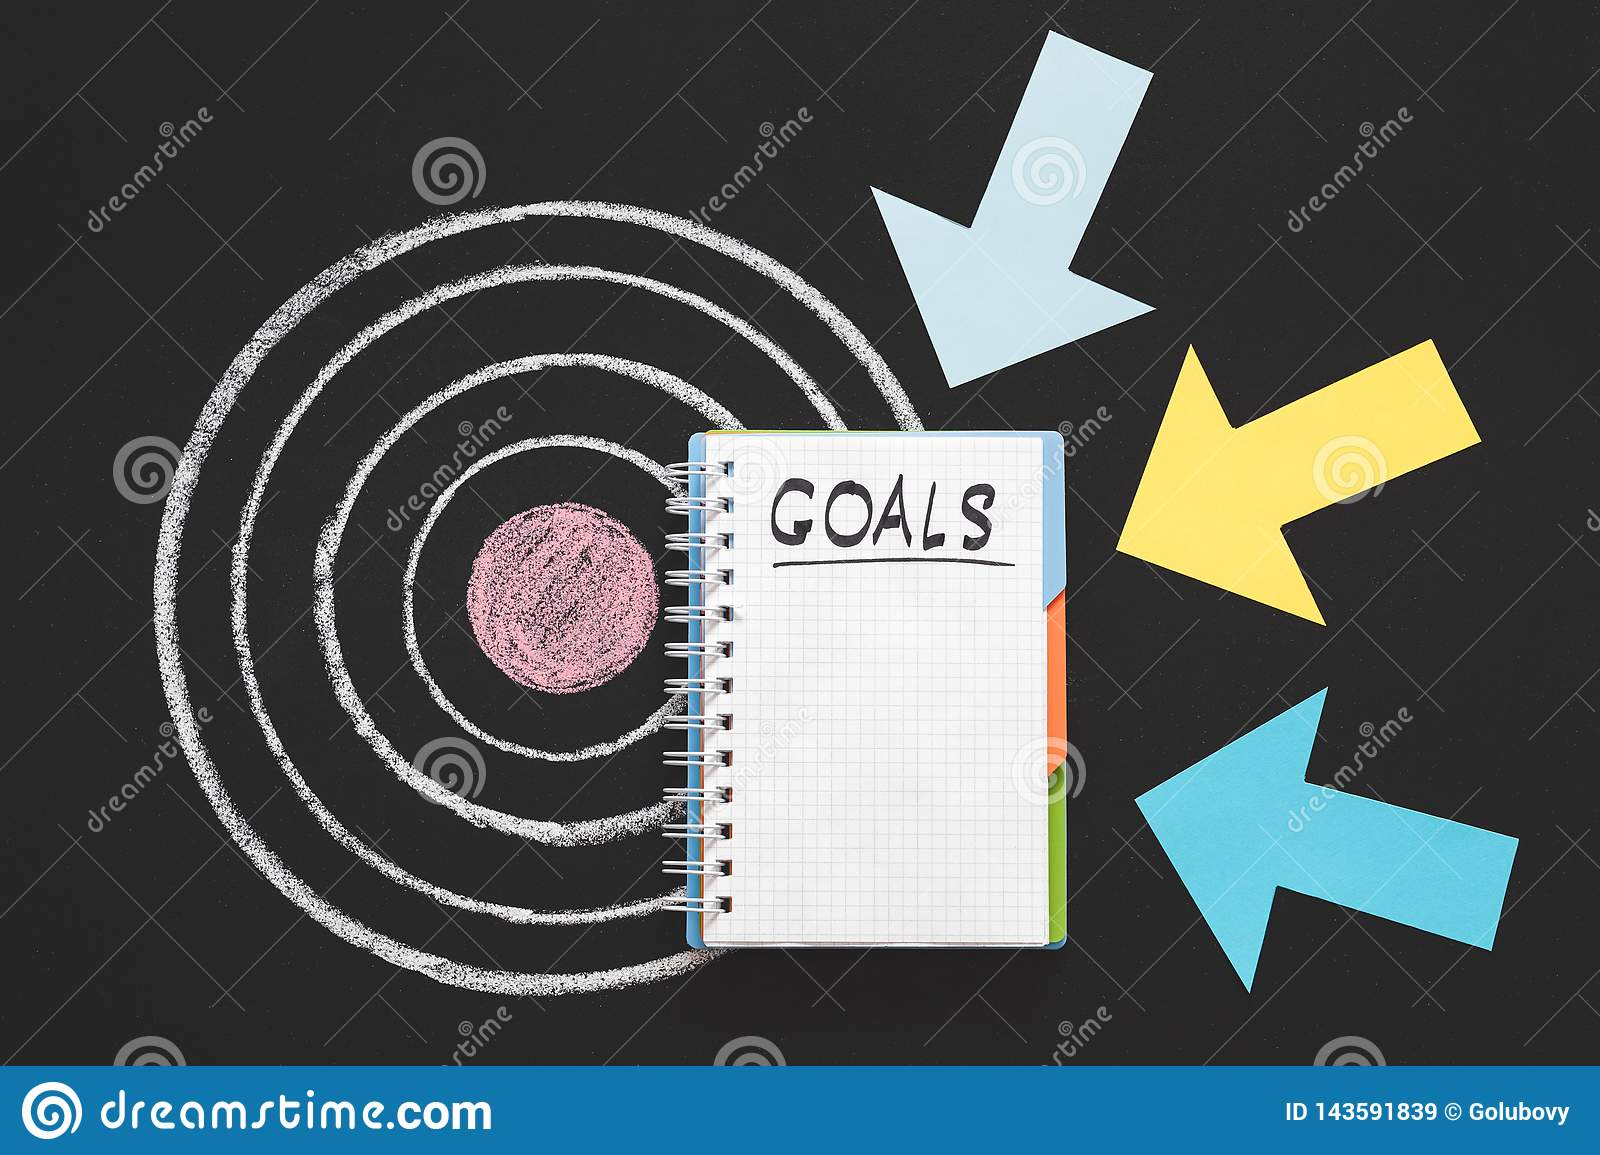 personal business goals aim aspiration inspiration stock image